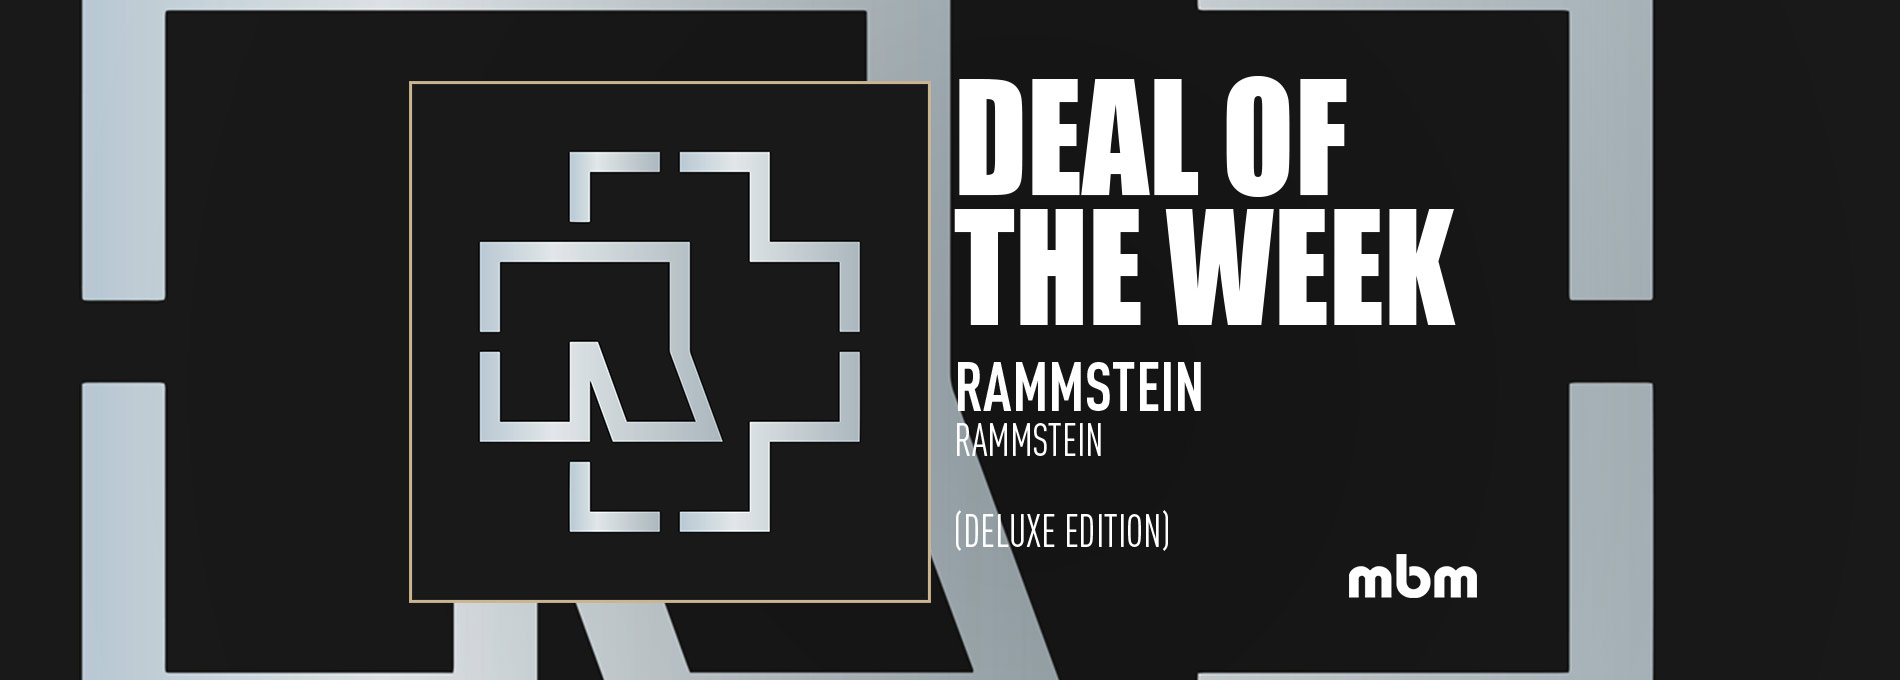 Deal Of The Week: RAMMSTEIN - Rammstein (Special Edition)